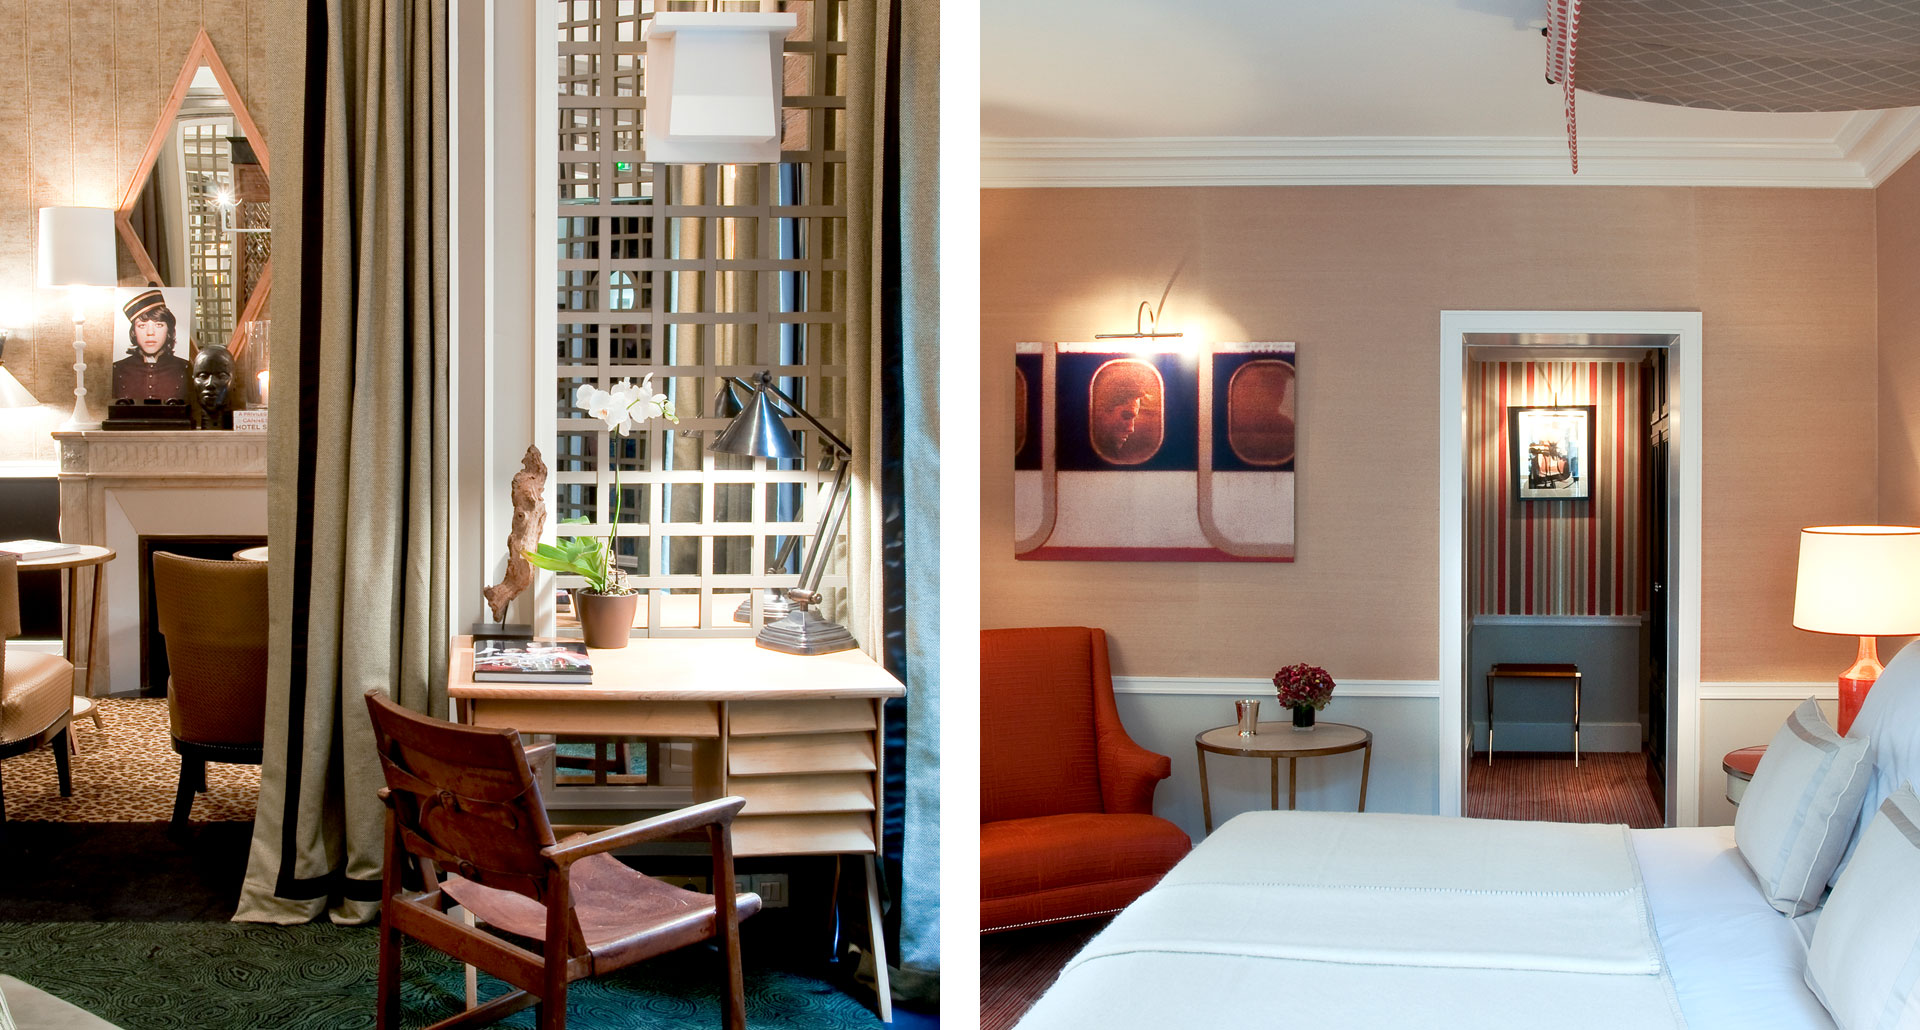 Hotel Recamier - boutique hotel in Paris